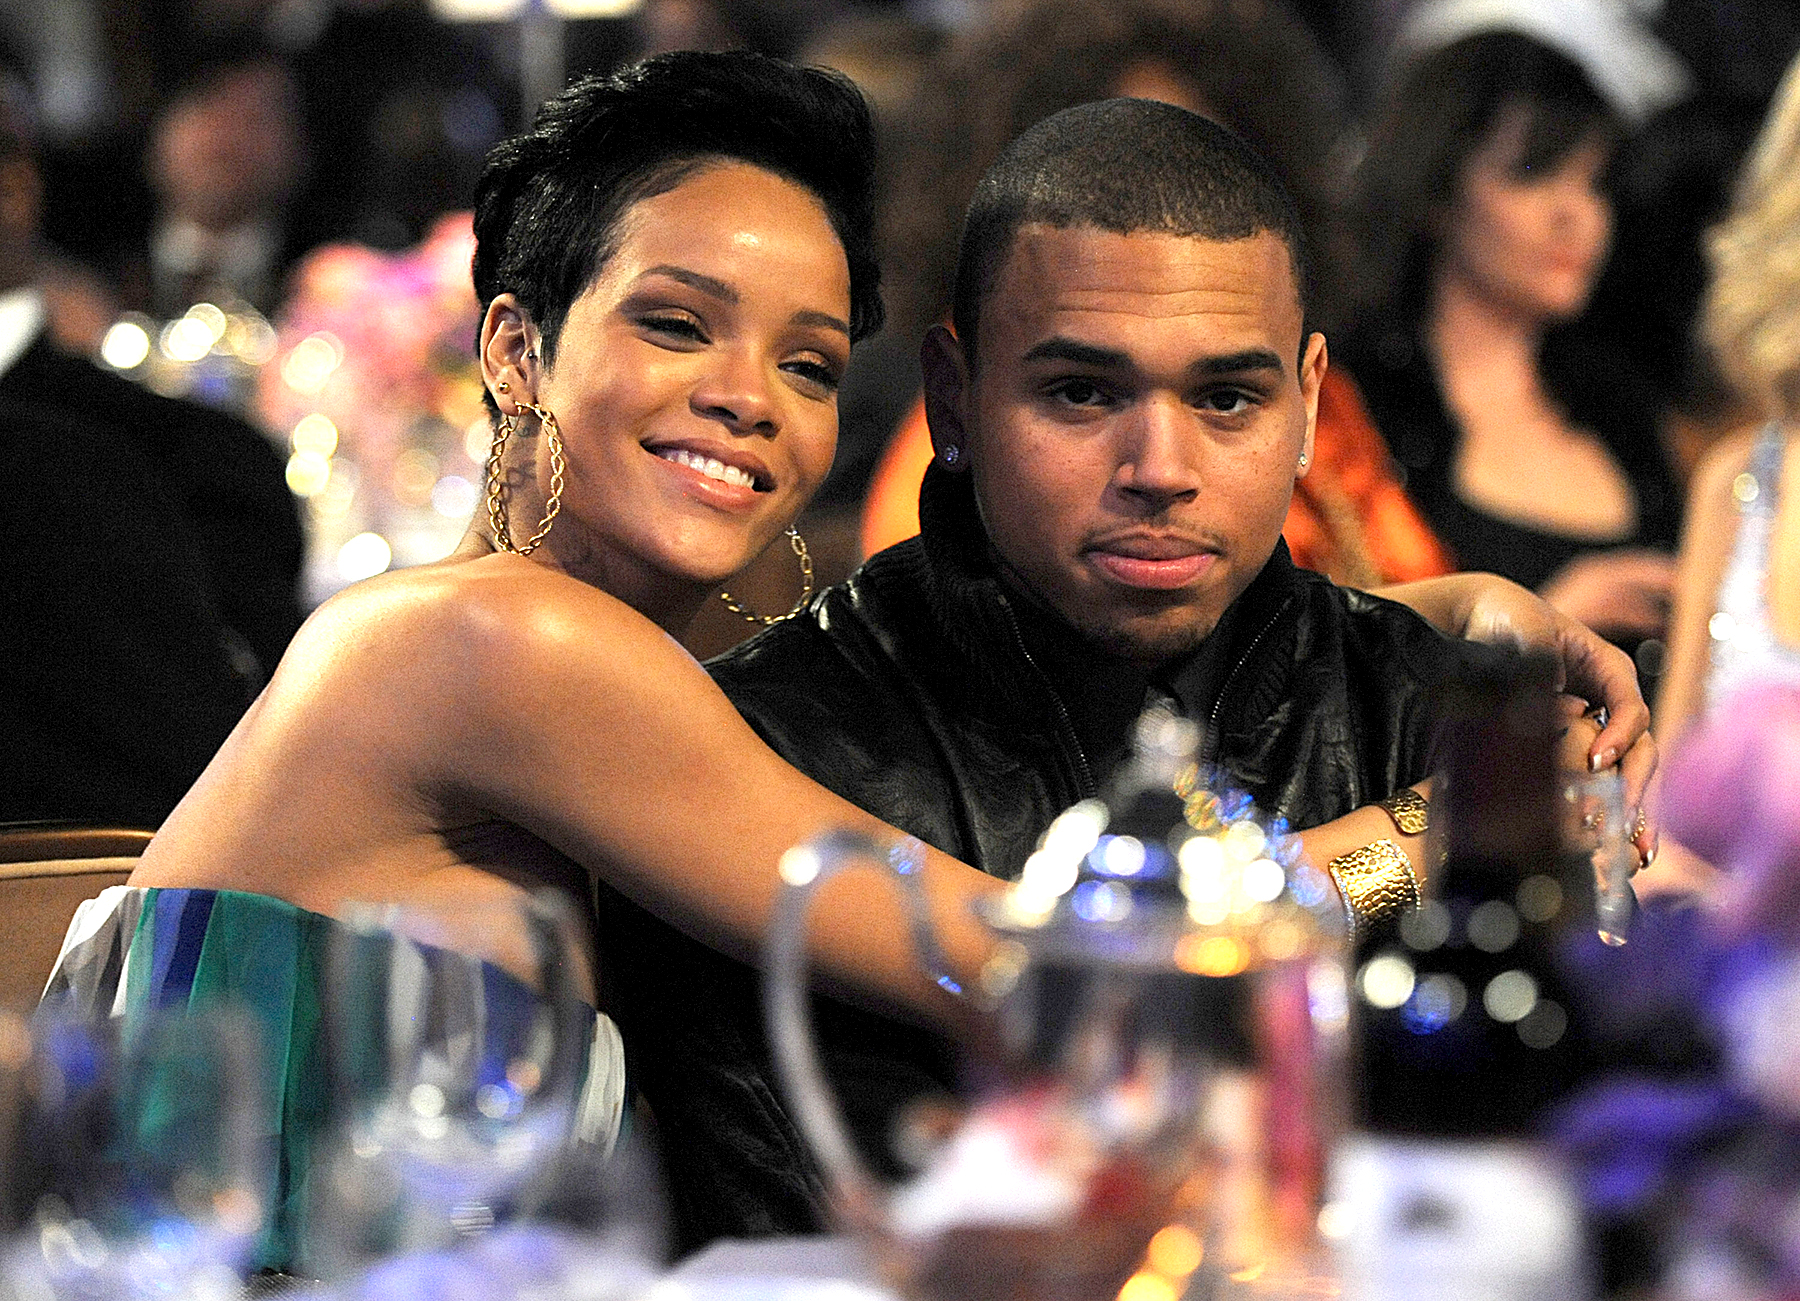 does rihanna and chris brown dating again